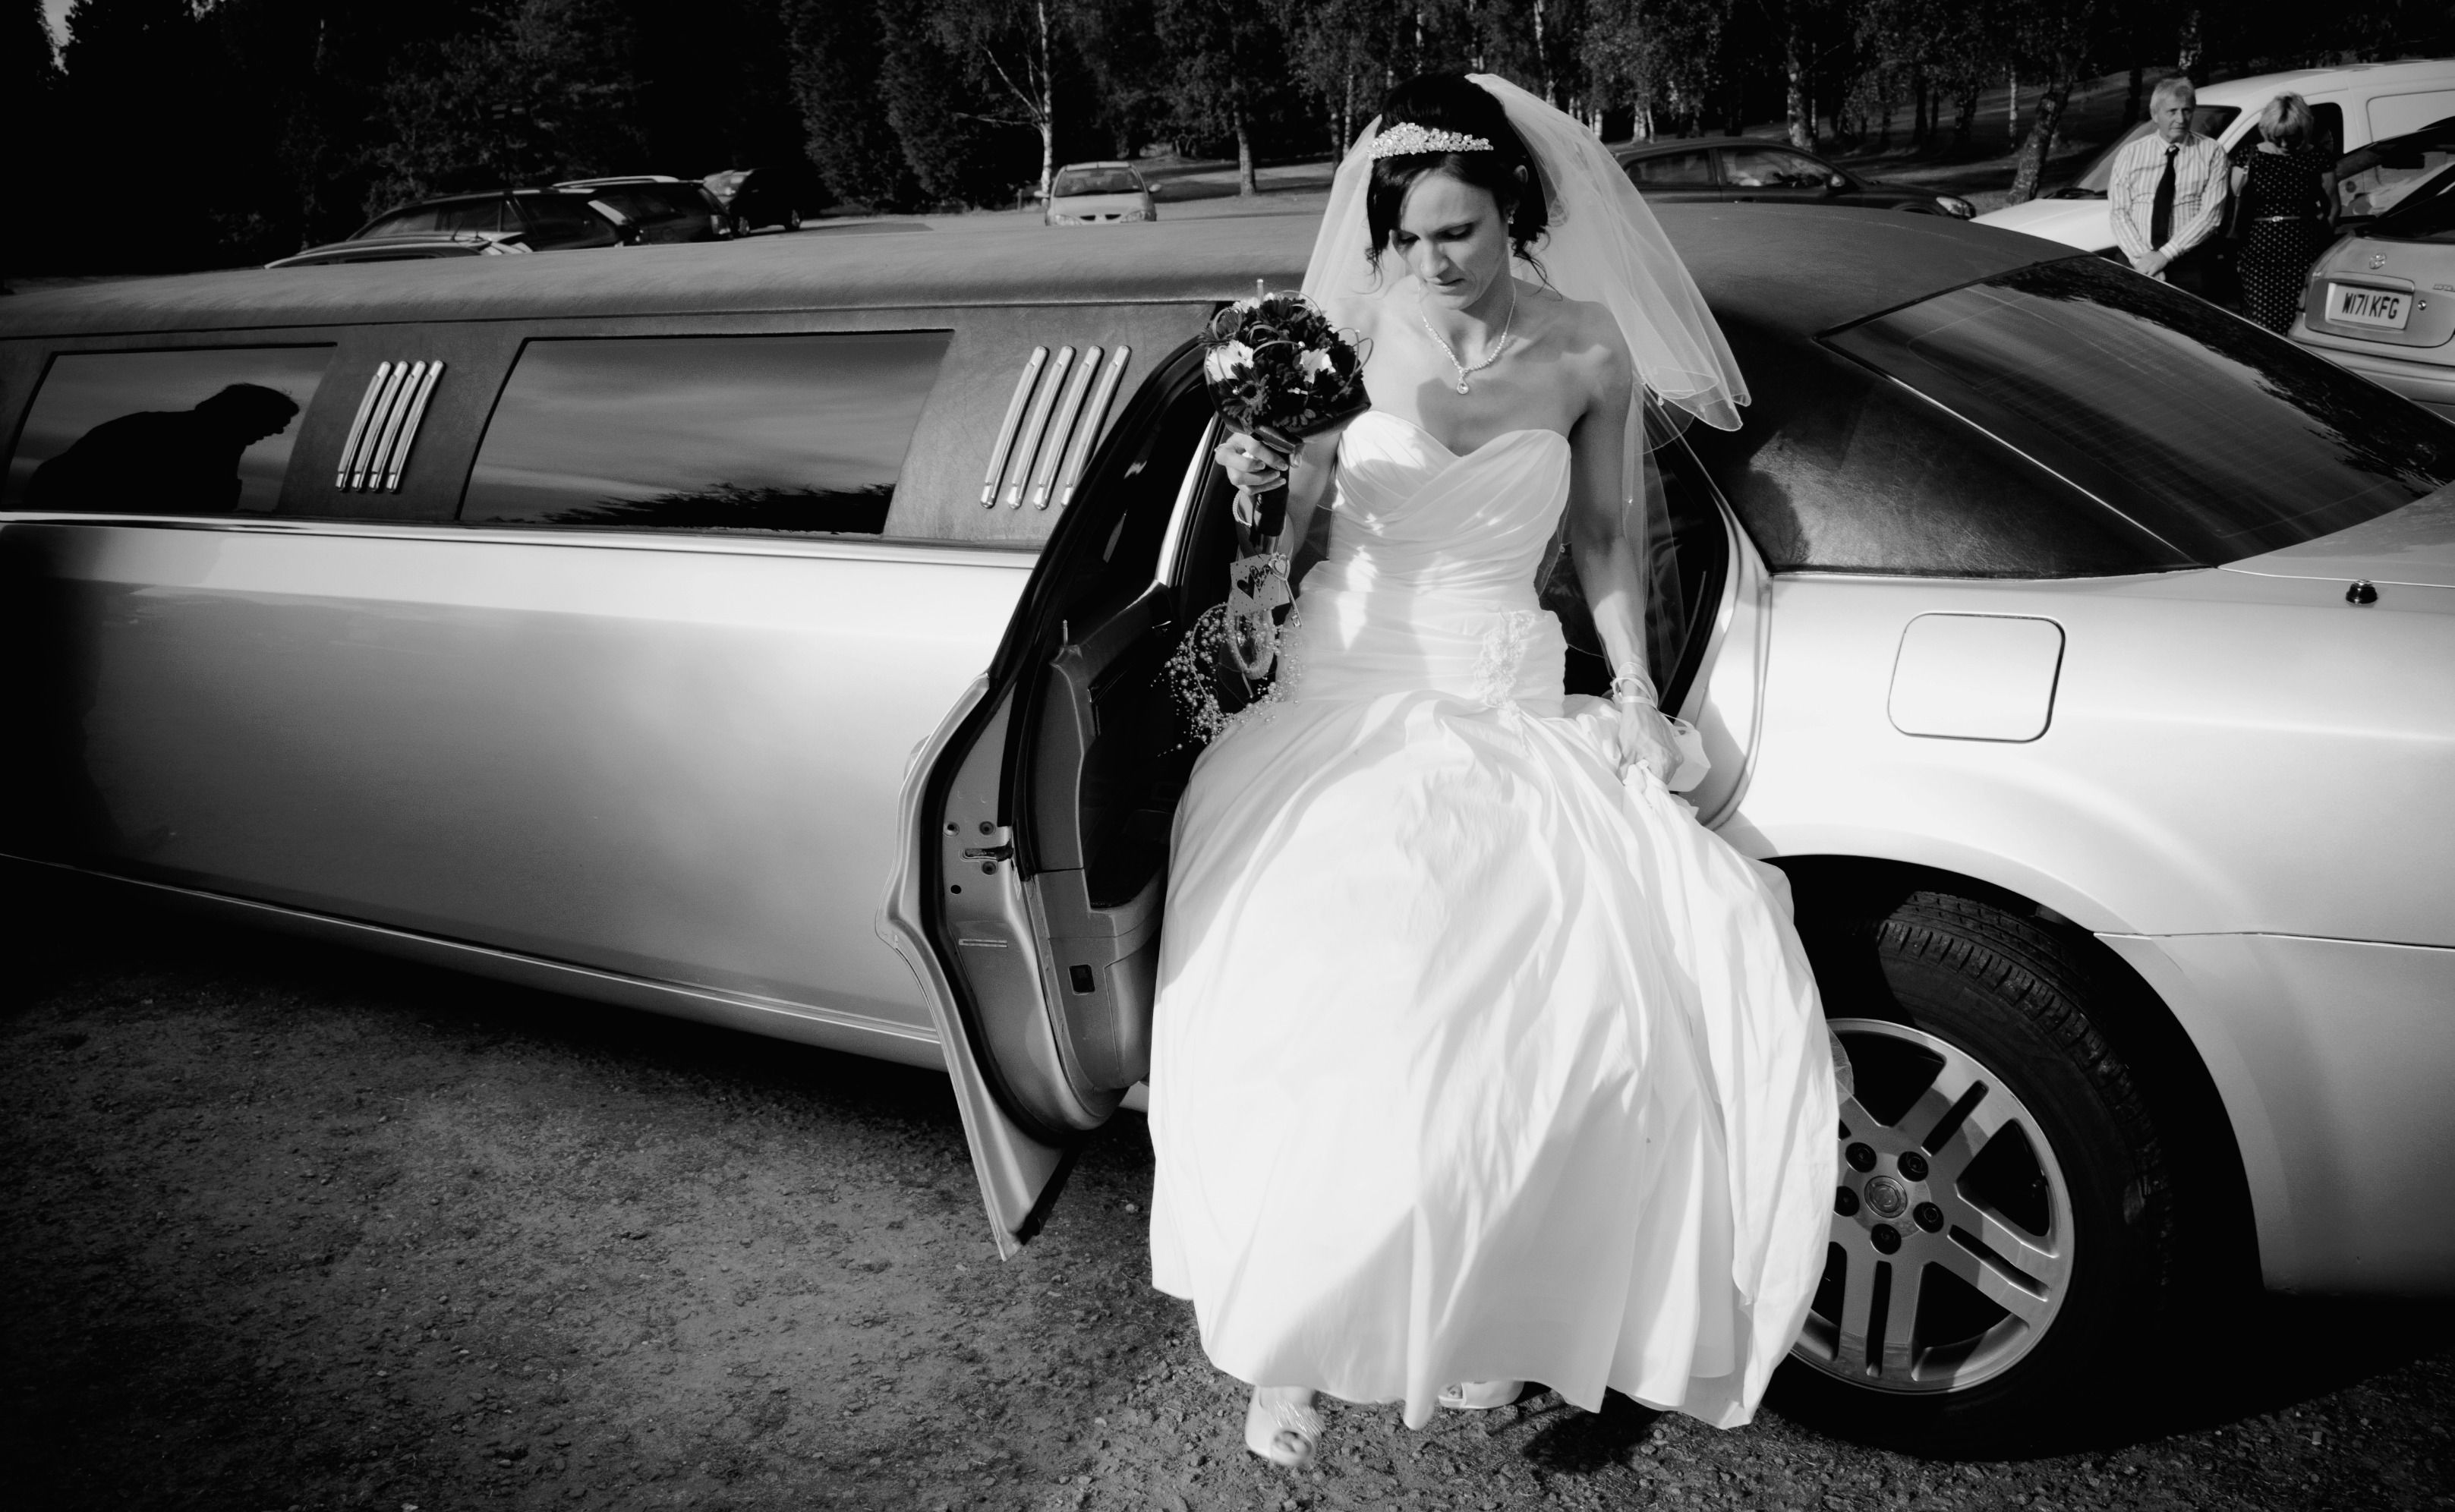 Wedding Toronto Limousine Assure You That Your Guests Will Be Dazzled With Our Well Maintained Spotless And Luxuri Wedding Limo Service Wedding Limo Limousine